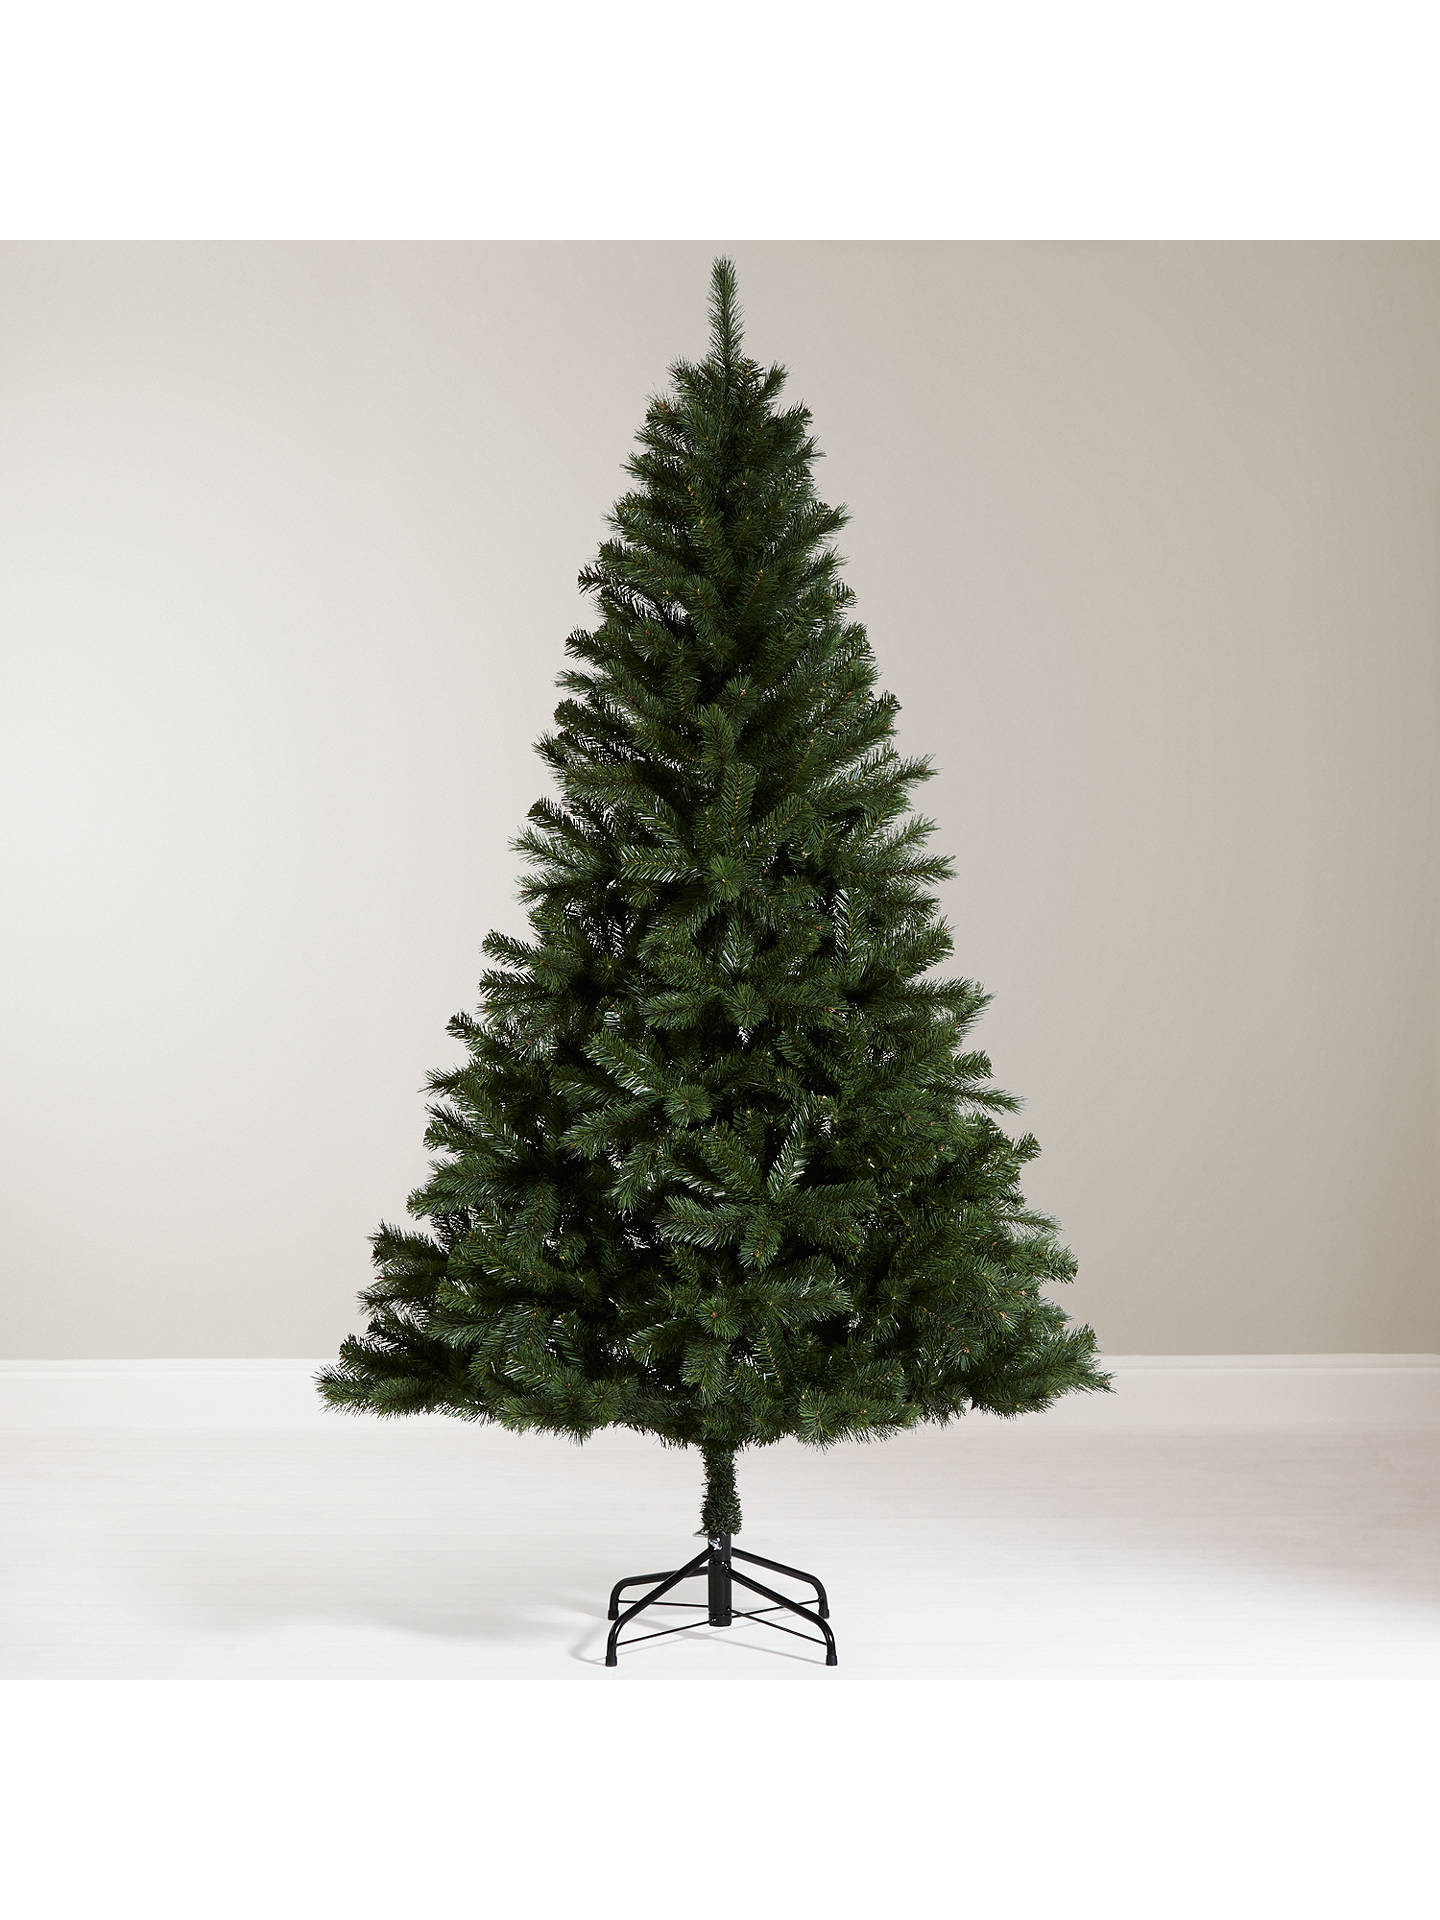 John Lewis Christmas Tree.John Lewis Fireside Christmas Tree 6ft At John Lewis Partners